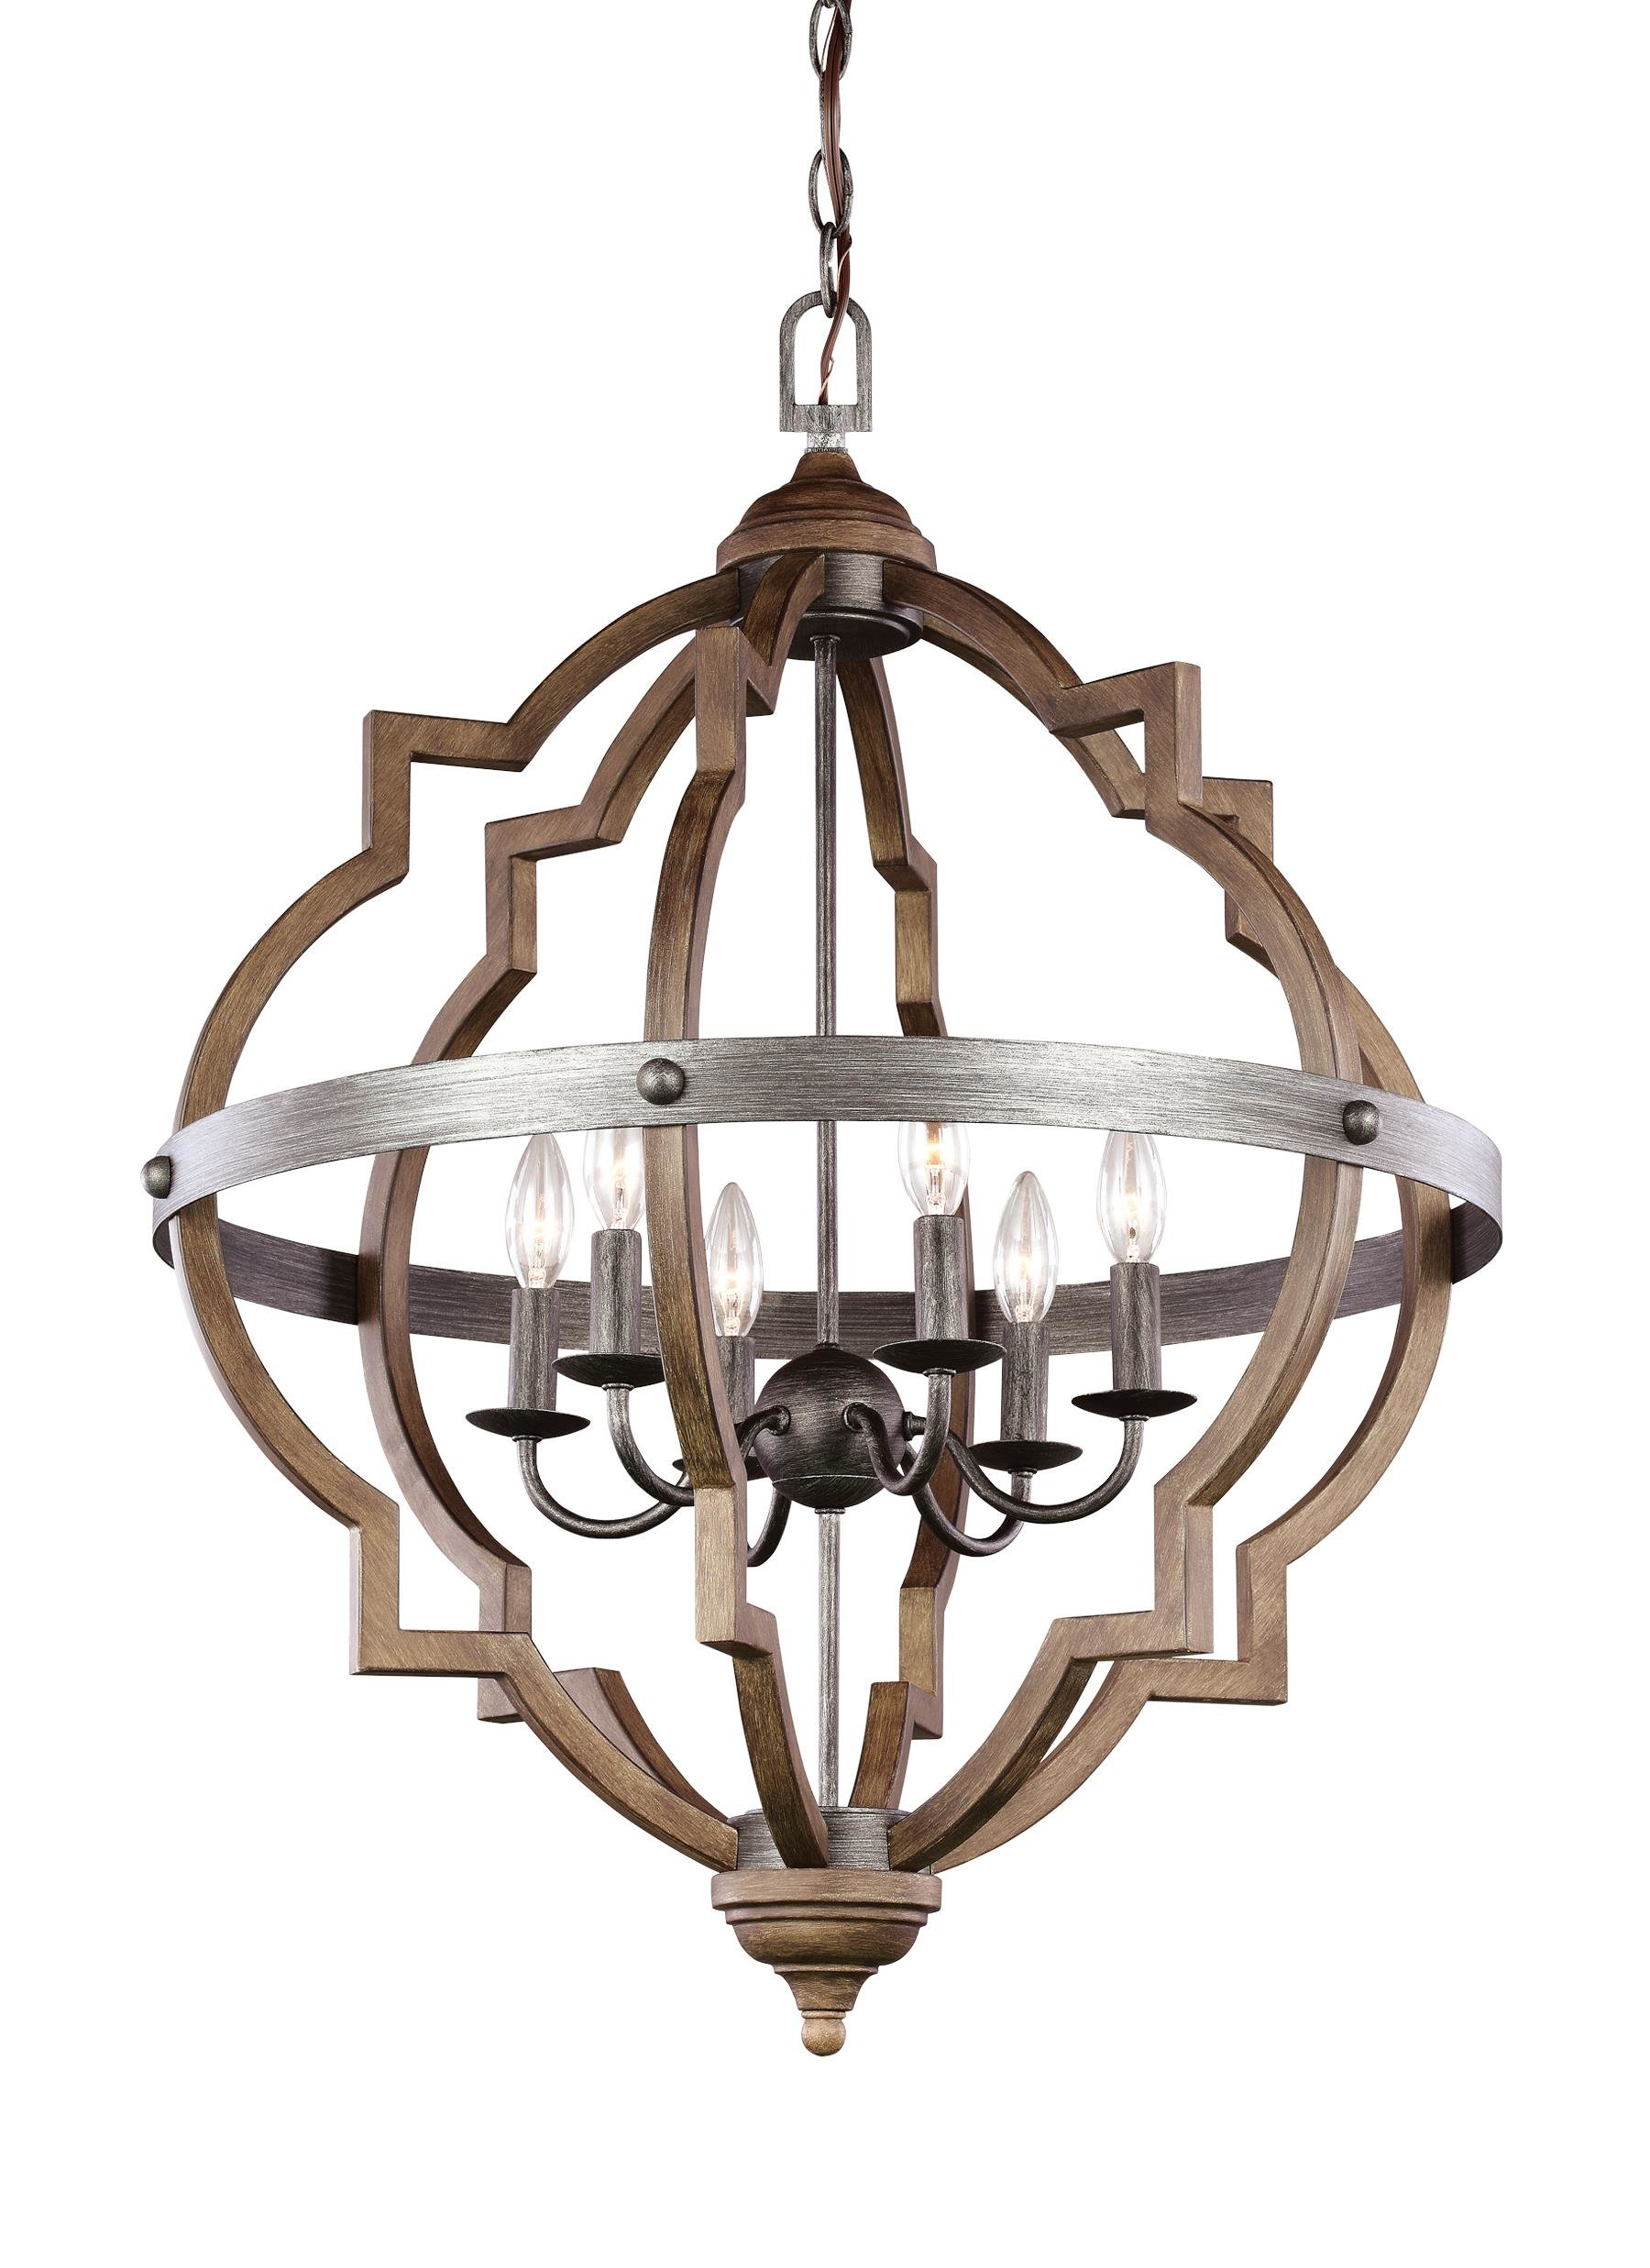 Bennington 6 Light Candle Style Chandelier With Regard To Bennington 4 Light Candle Style Chandeliers (View 5 of 30)